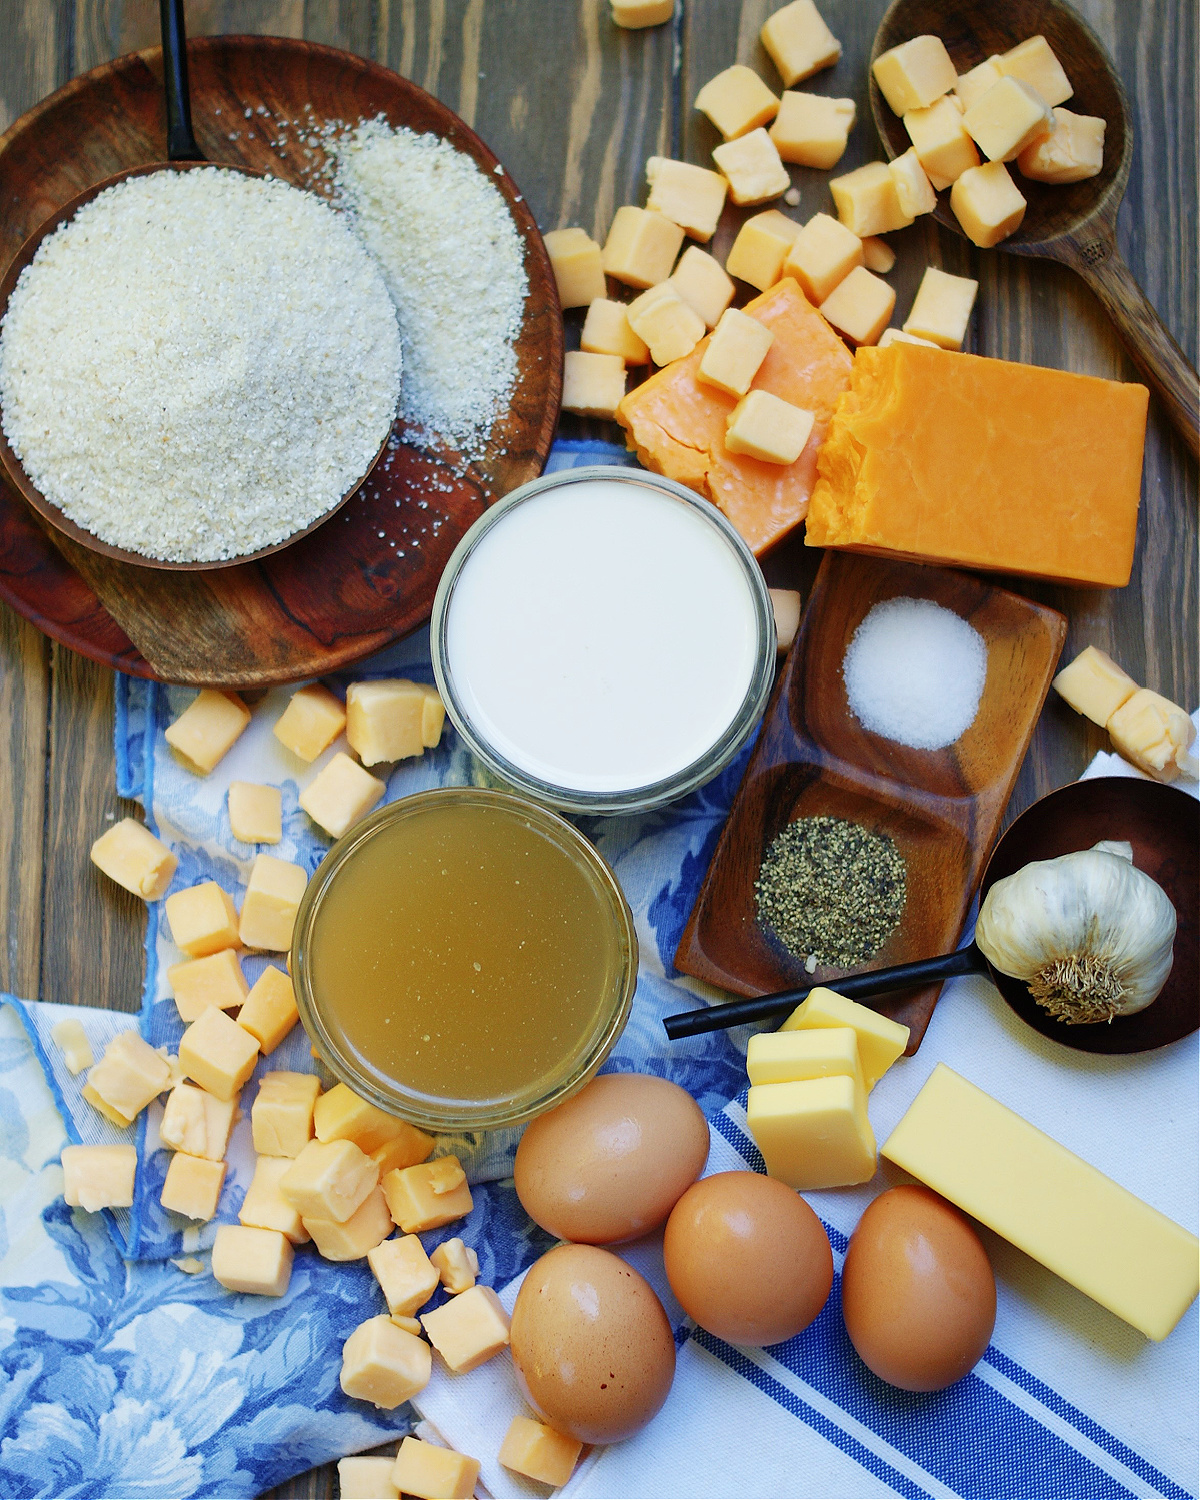 Ingredients for Baked Gouda Cheese Grits